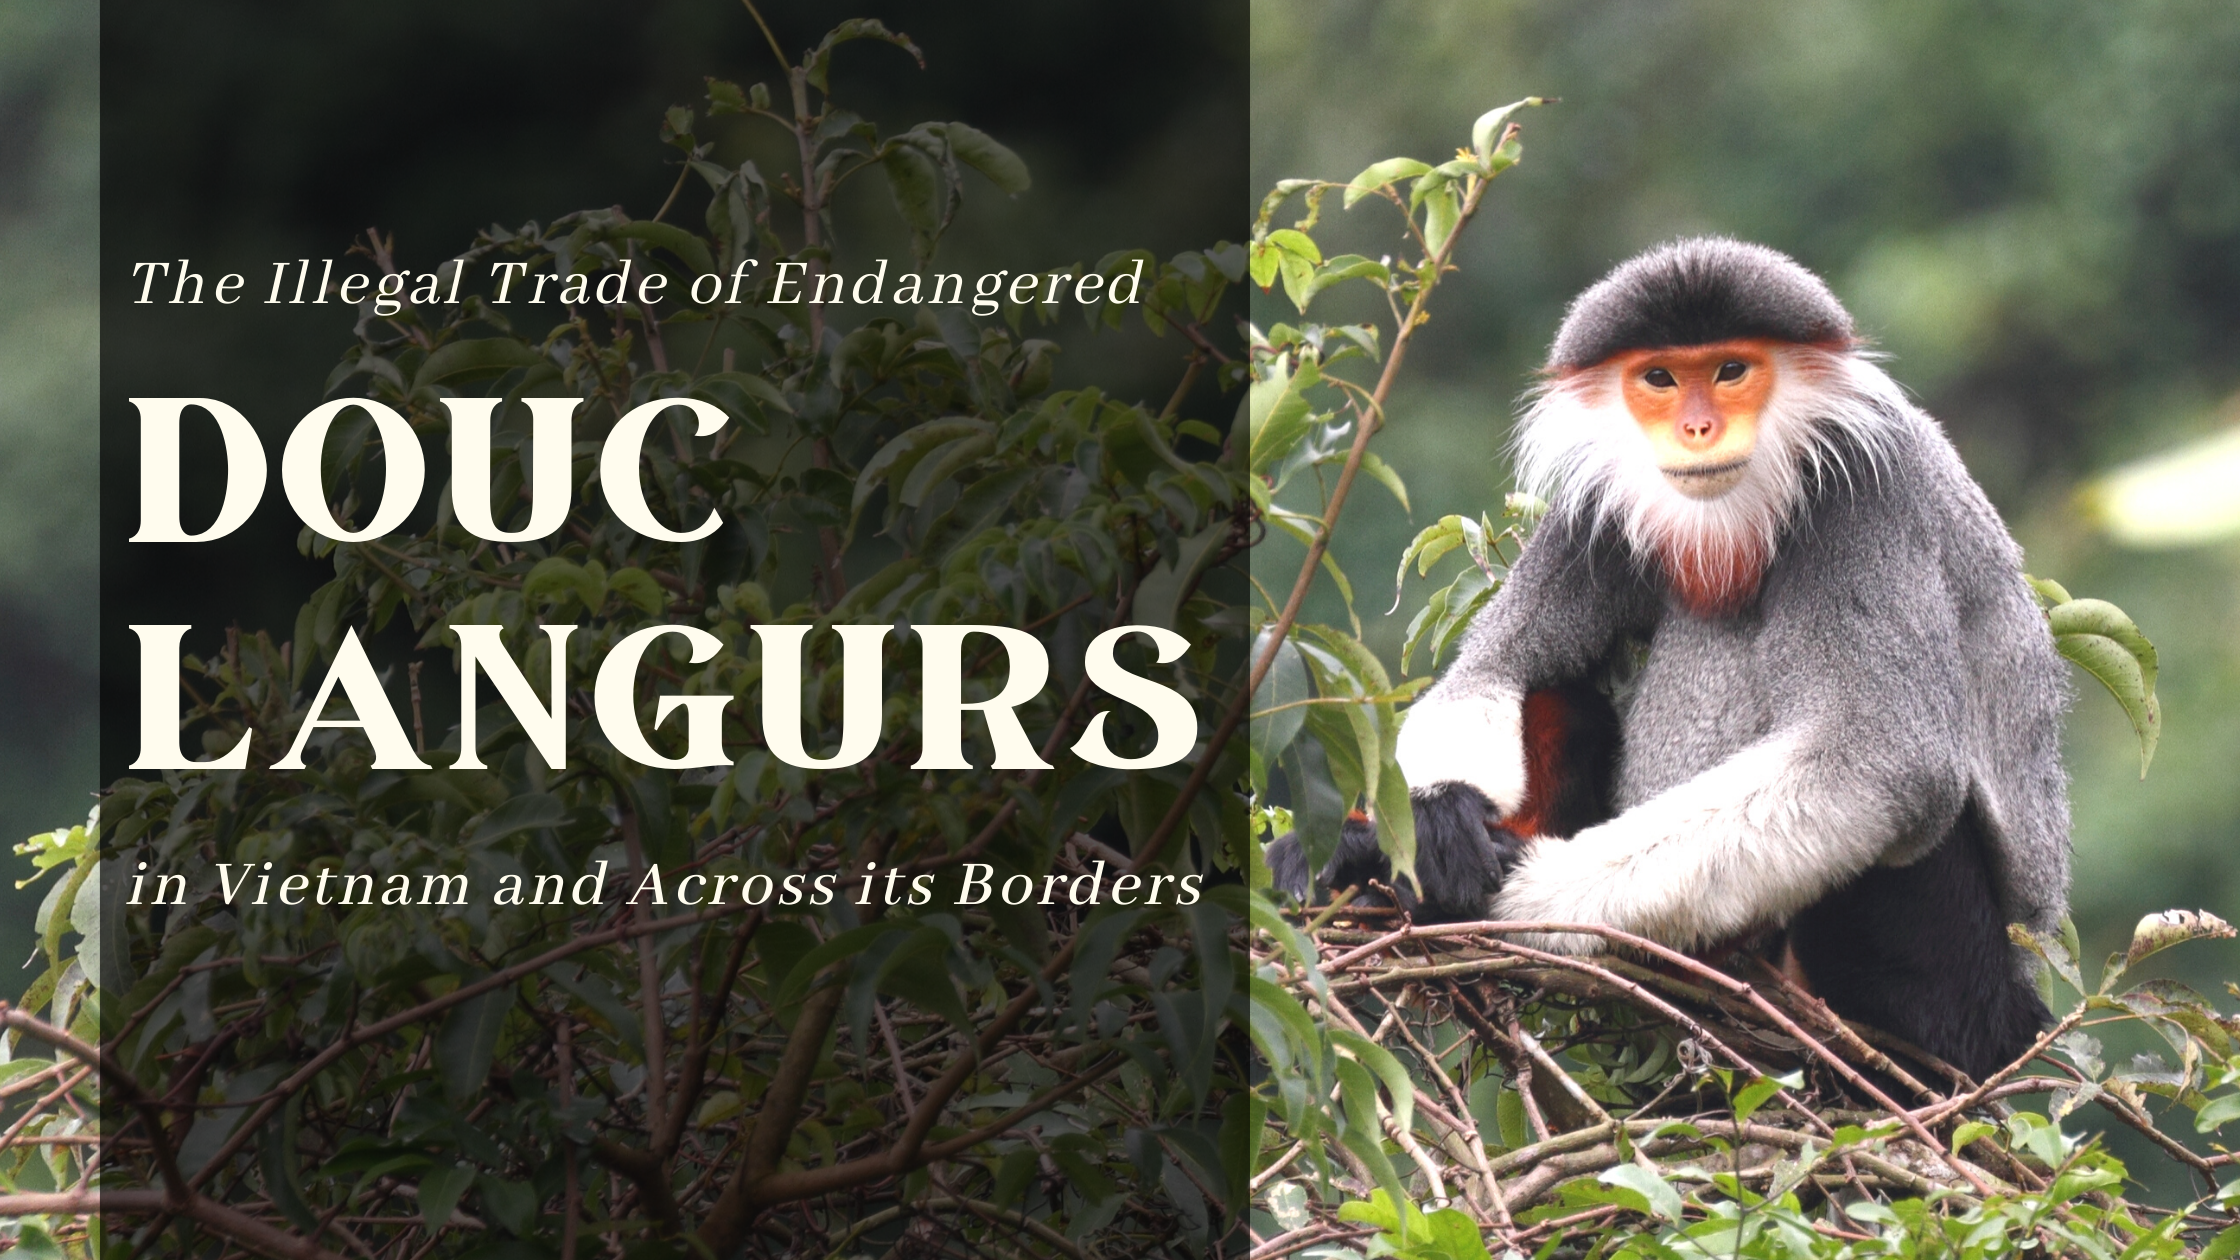 The Illegal Trade of Endangered Douc Langurs in Vietnam and Across its Borders